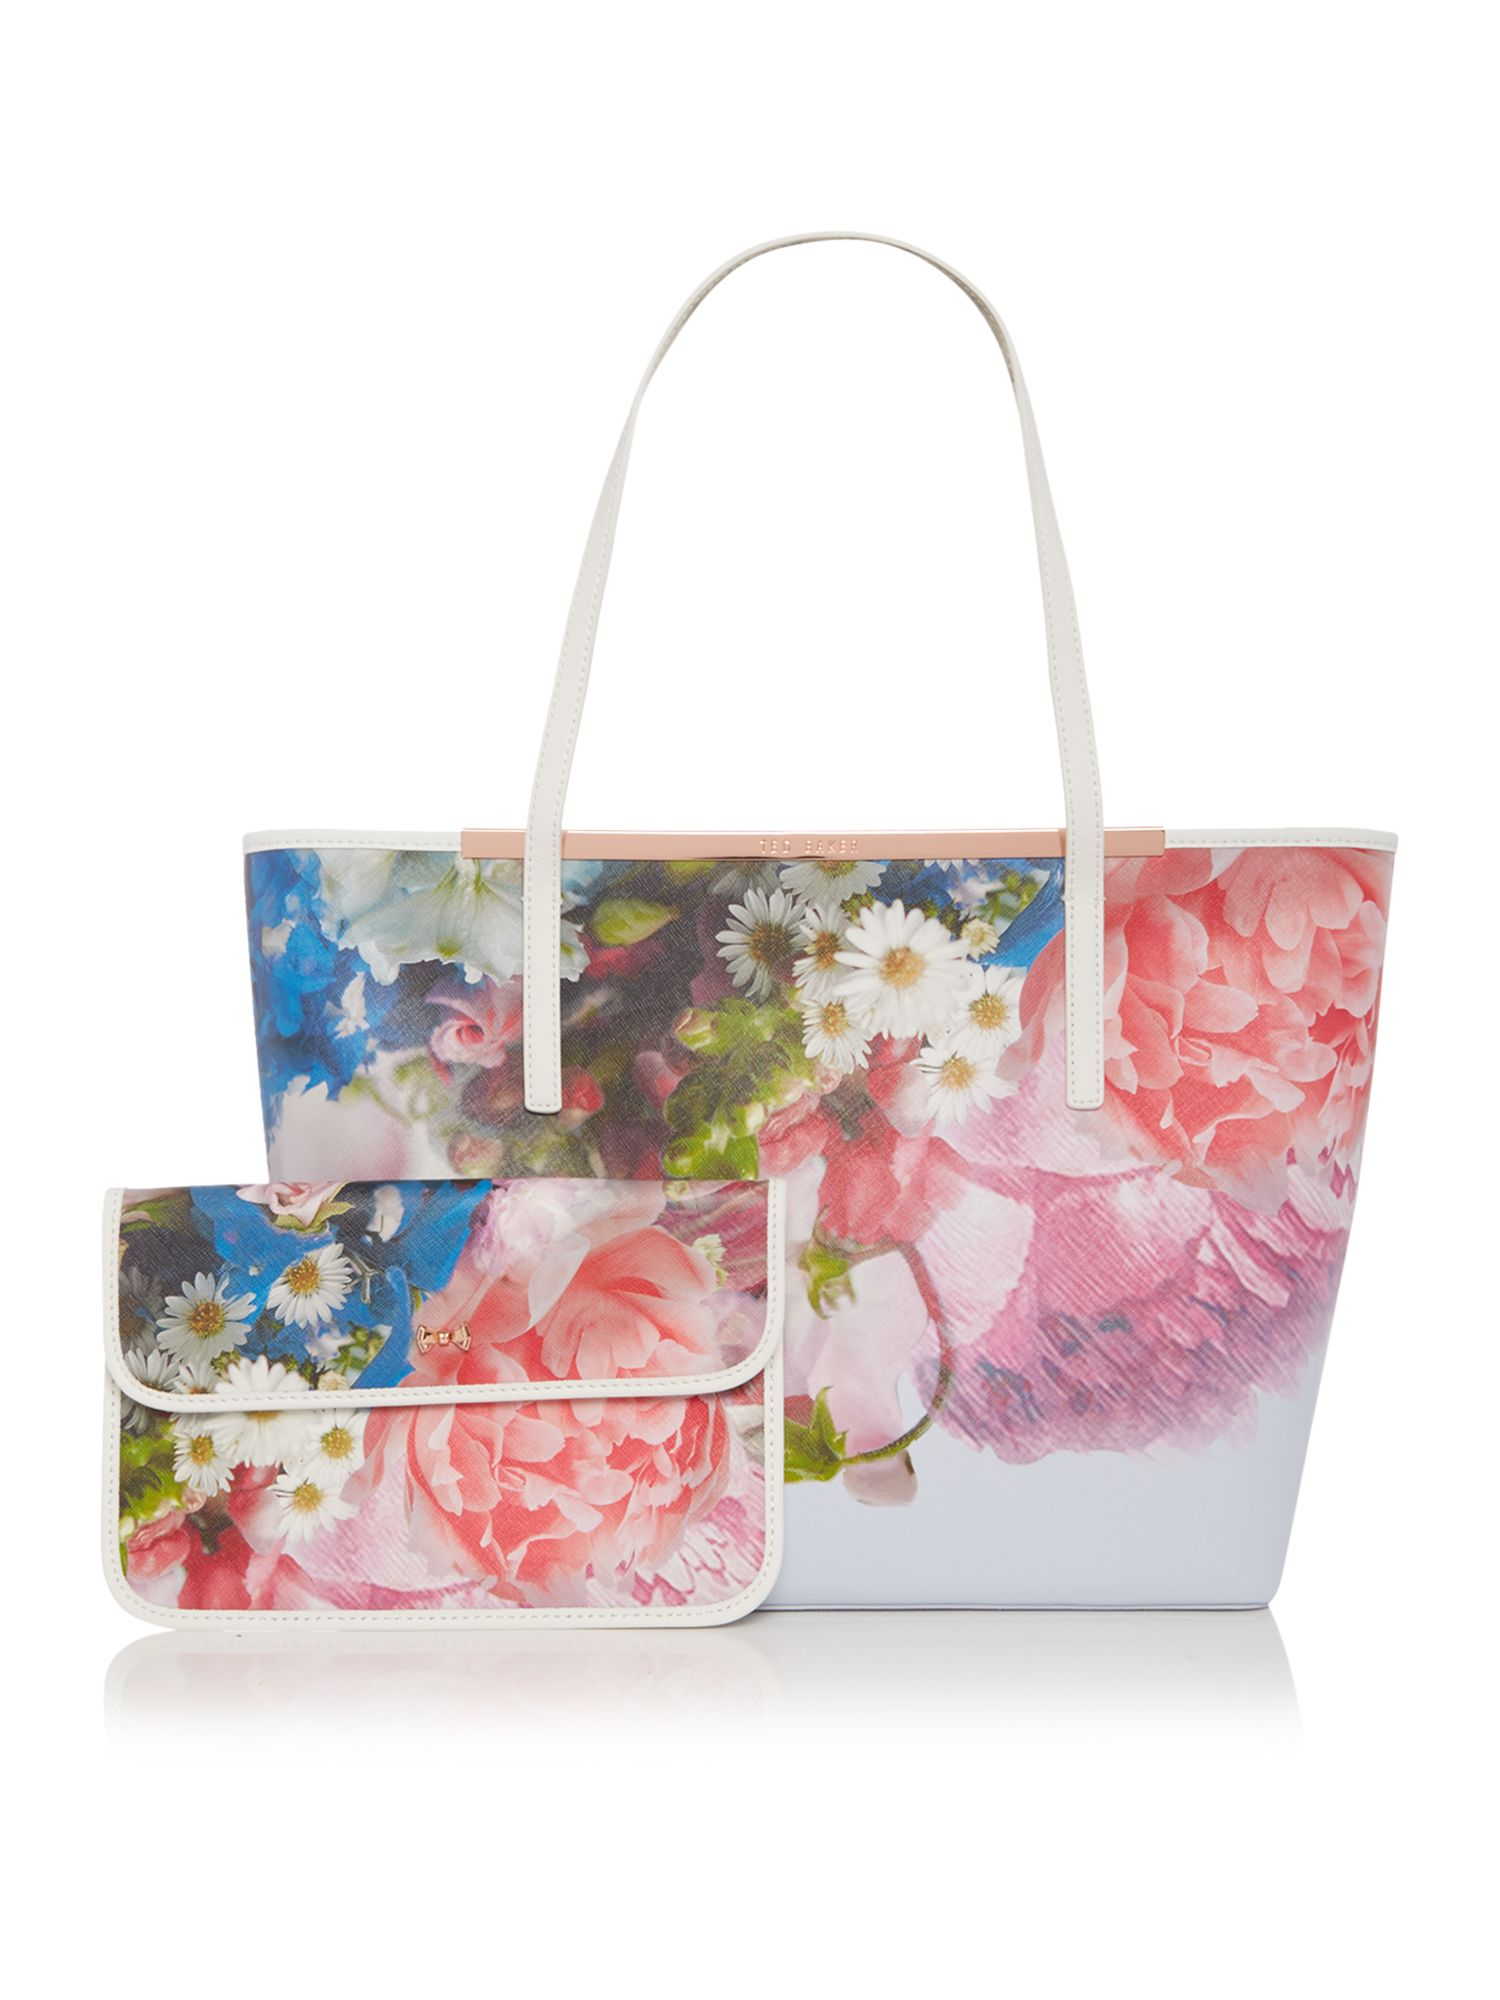 Ted Baker Tote Bag Sale UK | Buy Cheap Ted Baker Tote Bags